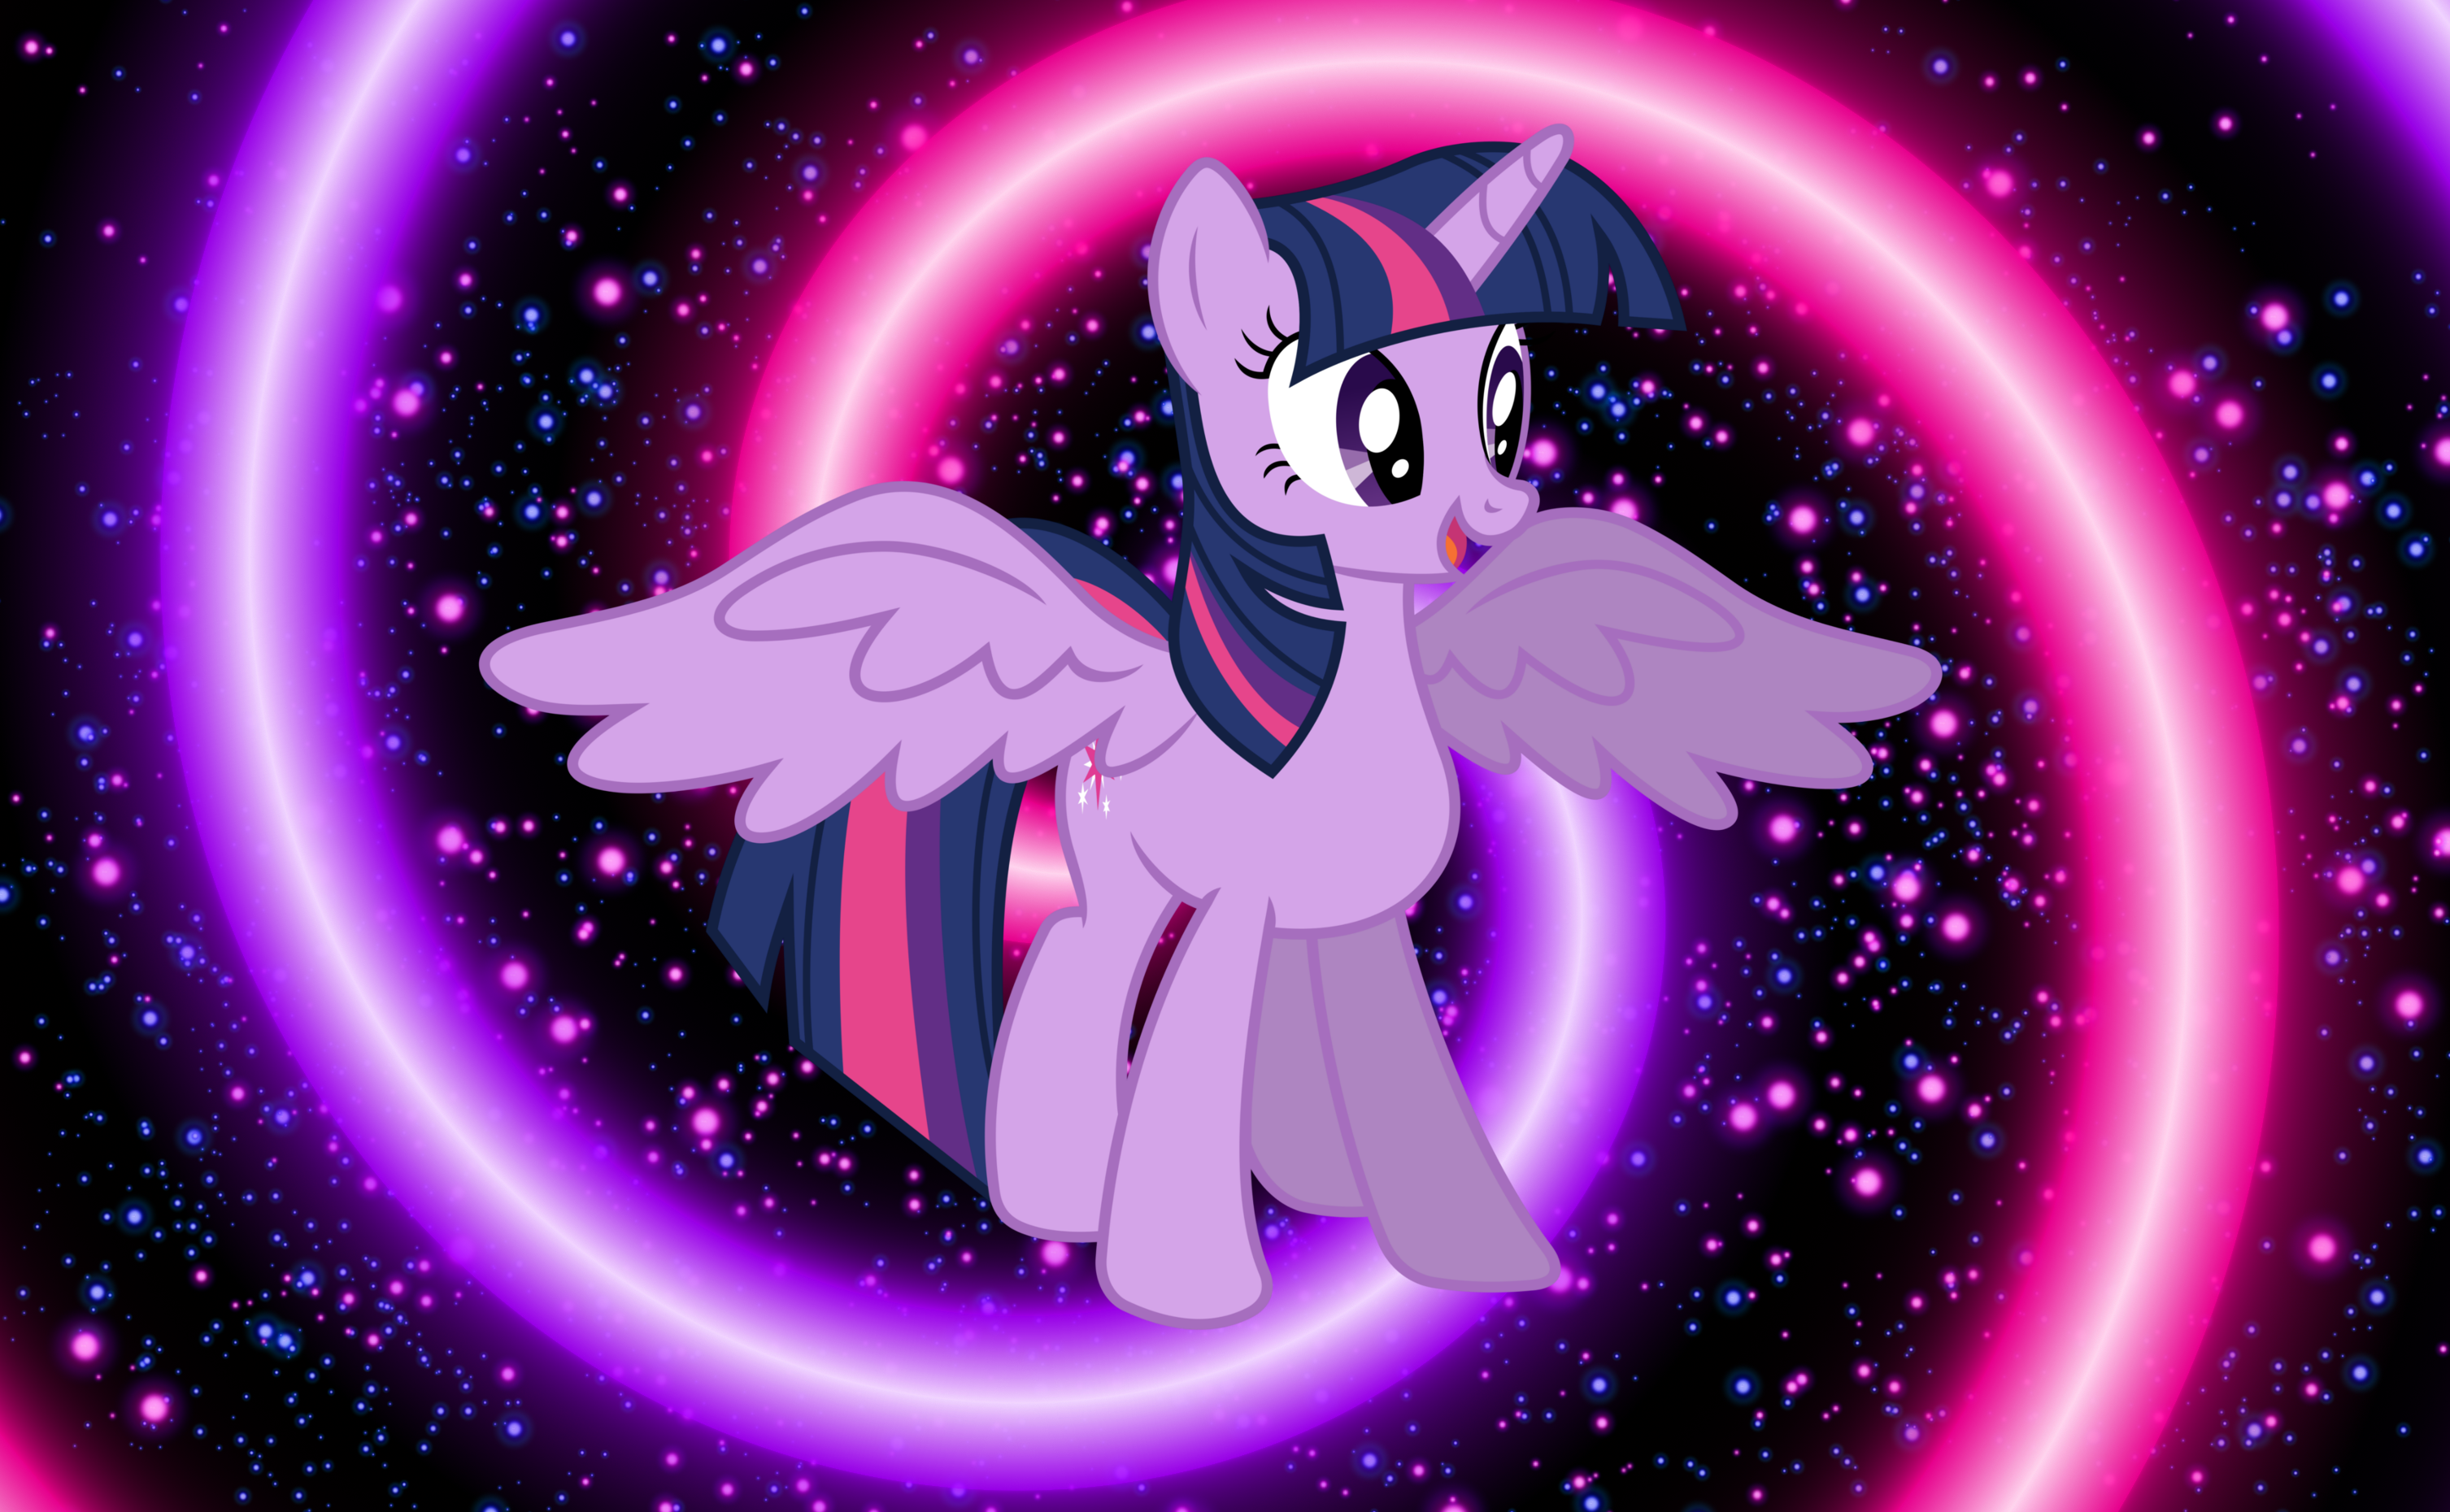 twilight sparkle wallpaper - photo #7